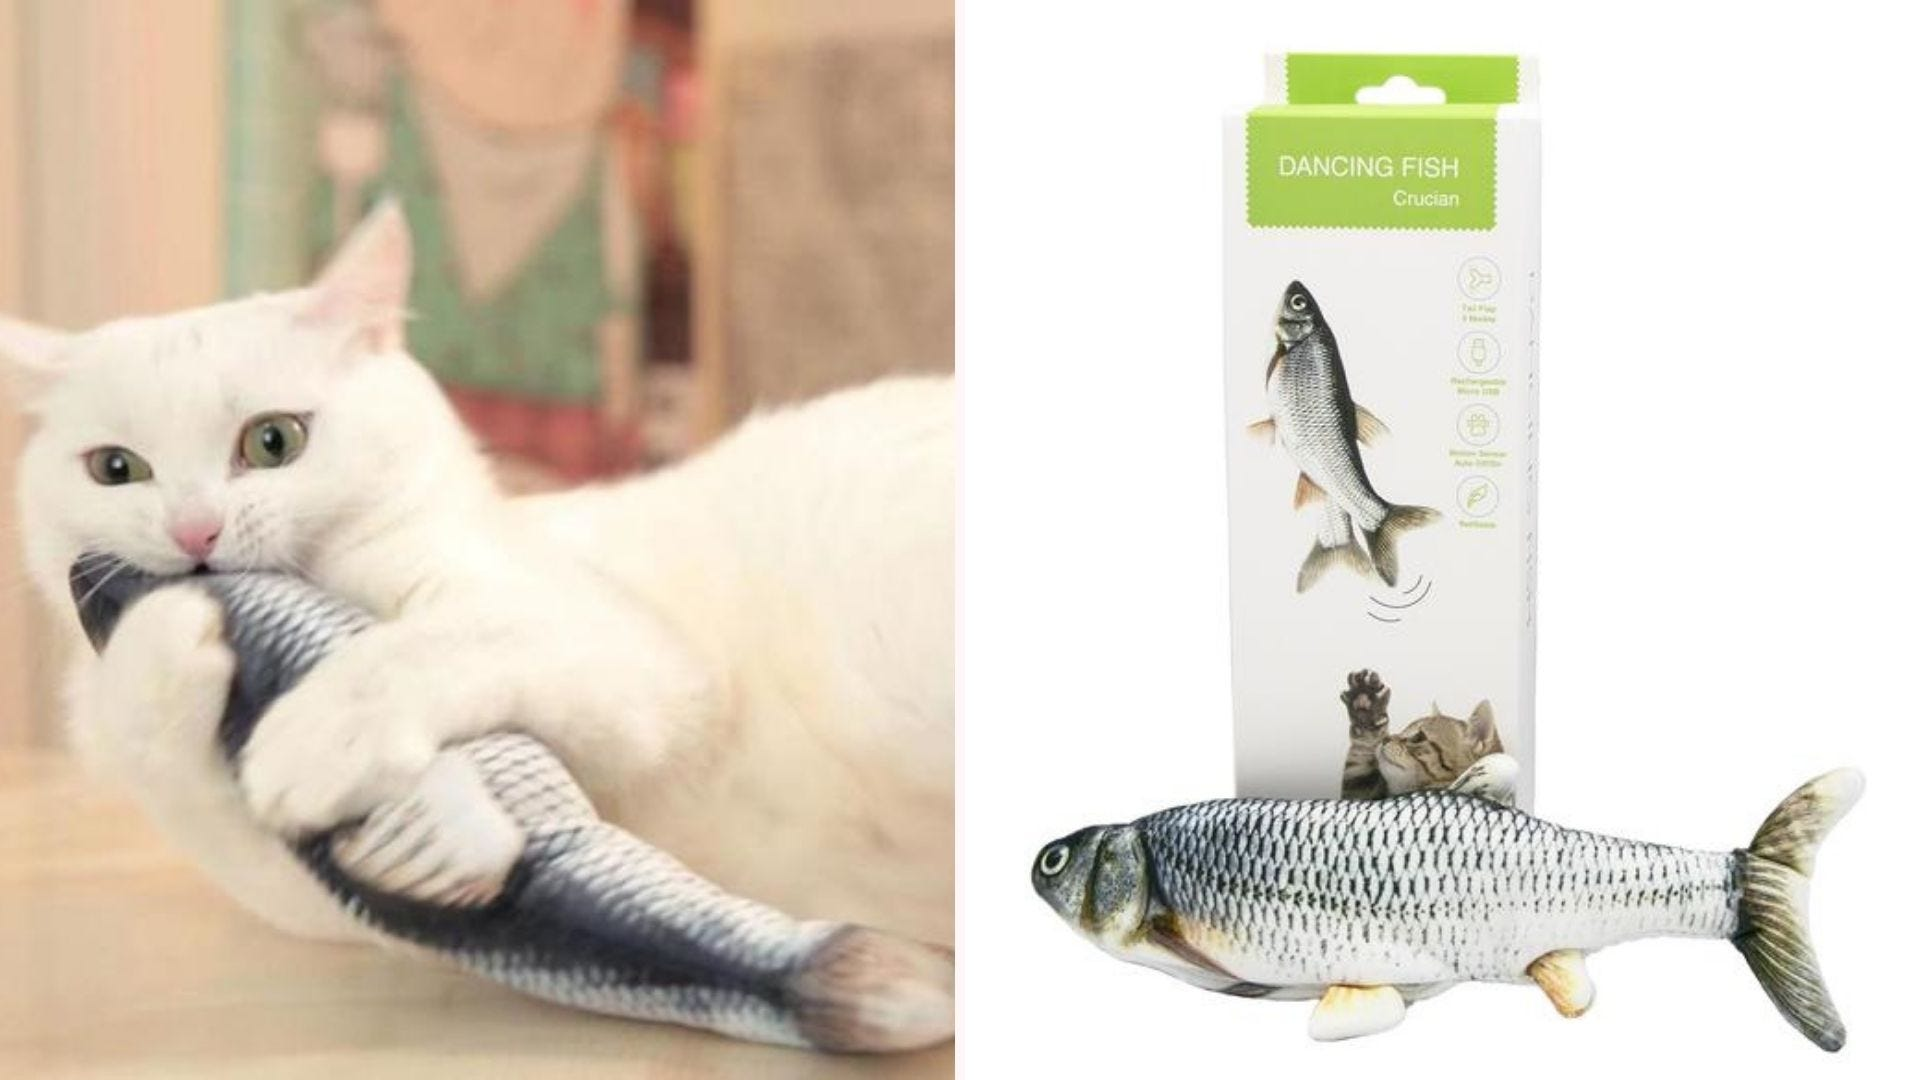 A white cat biting the dancing fish, and the toy lying in front of its box.